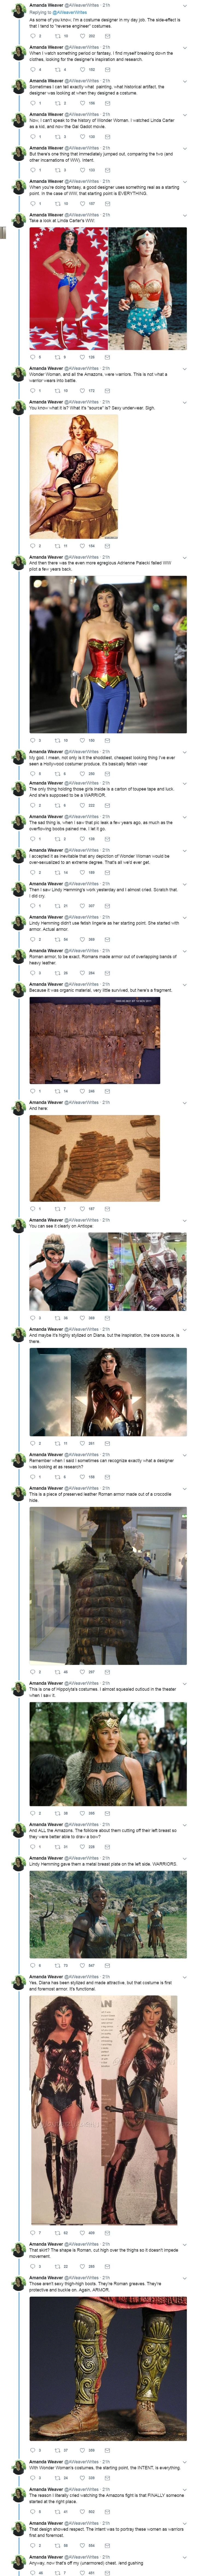 I've seen some complaints about the boob armor in Wonder Woman, but overall, I agree with this and was also happy to see the classical influences